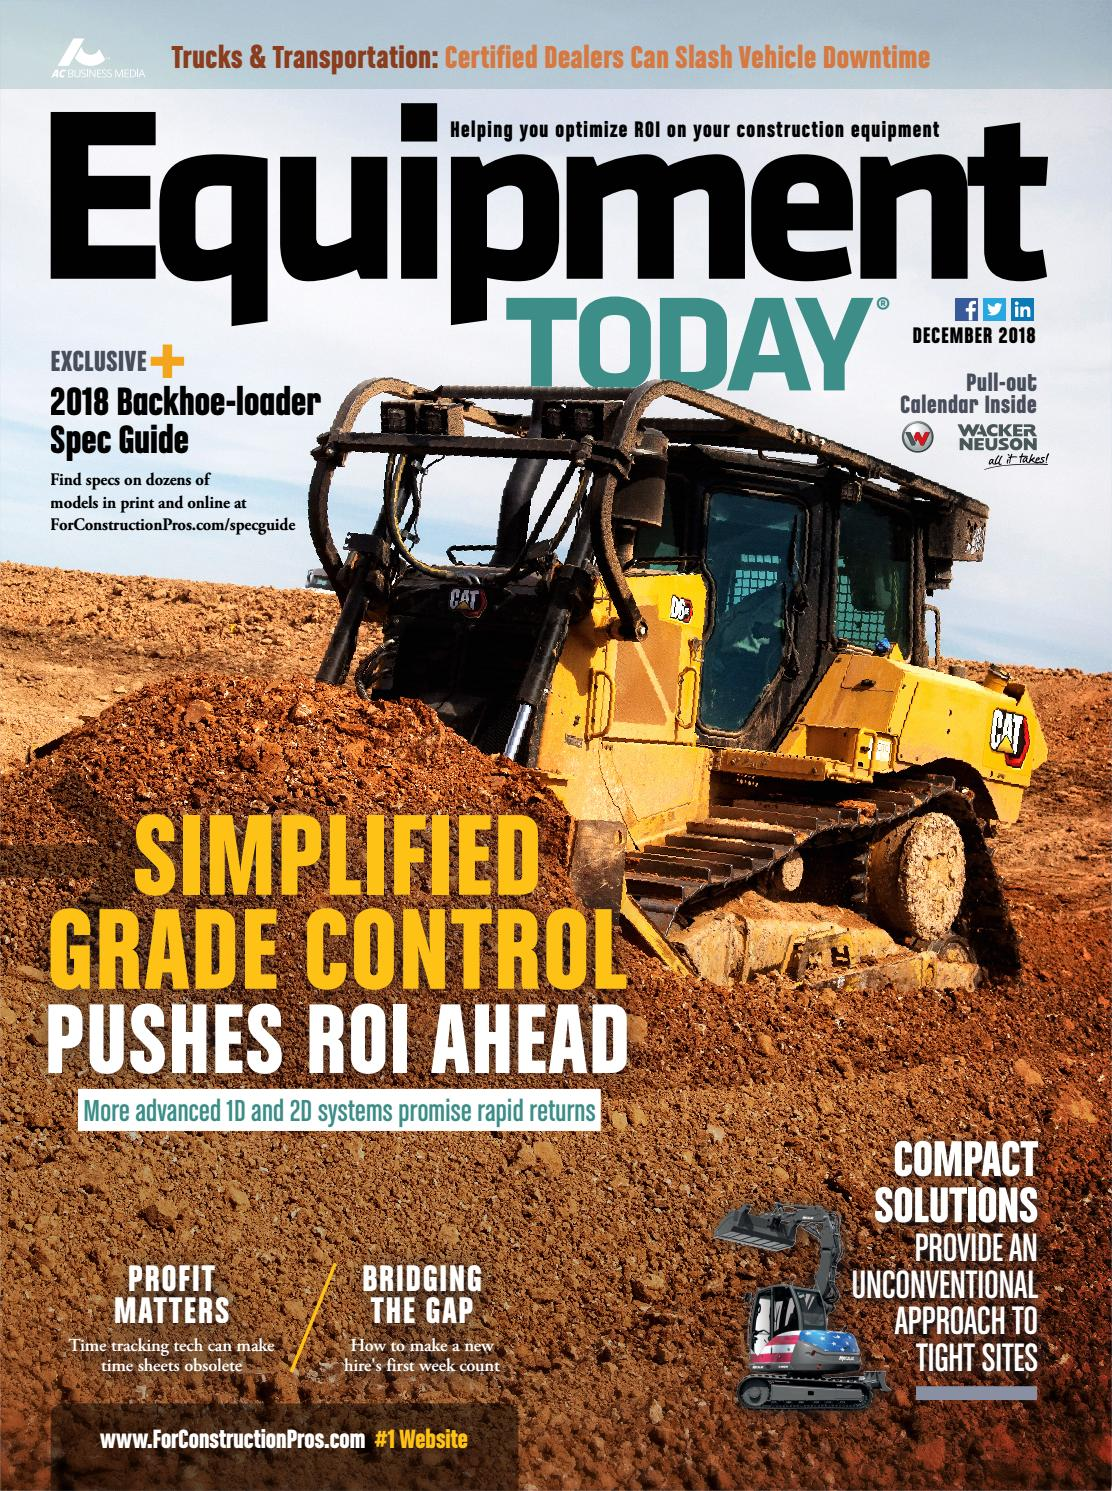 Equipment Today December 2018 by ForConstructionPros com - issuu